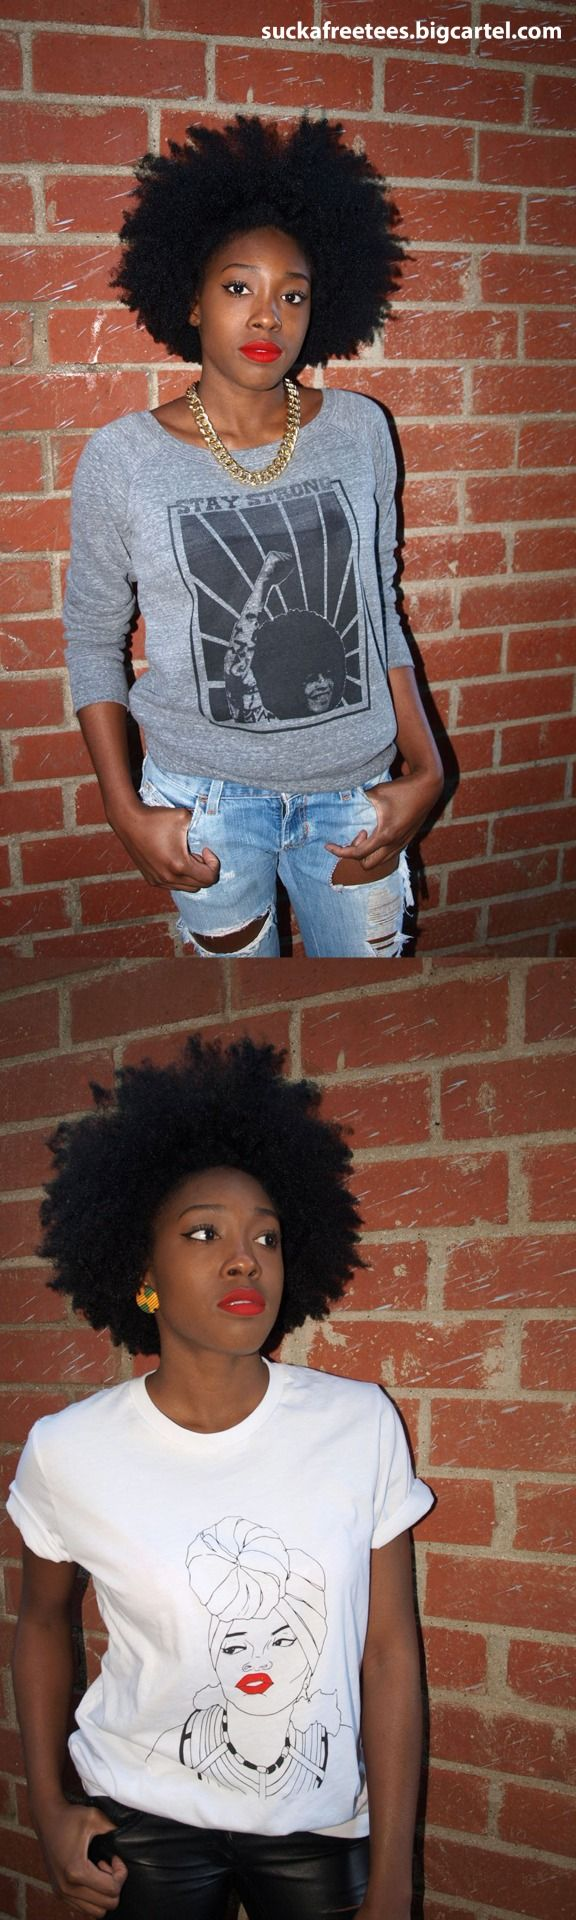 {Grow Lust Worthy Hair FASTER Naturally} ========================= Go To: www.shorthaircutsforblackwomen.com/natural-hair-style_pictures/ ========================= Oh My Gosh...Love the T-Shirts and Hair!!!!